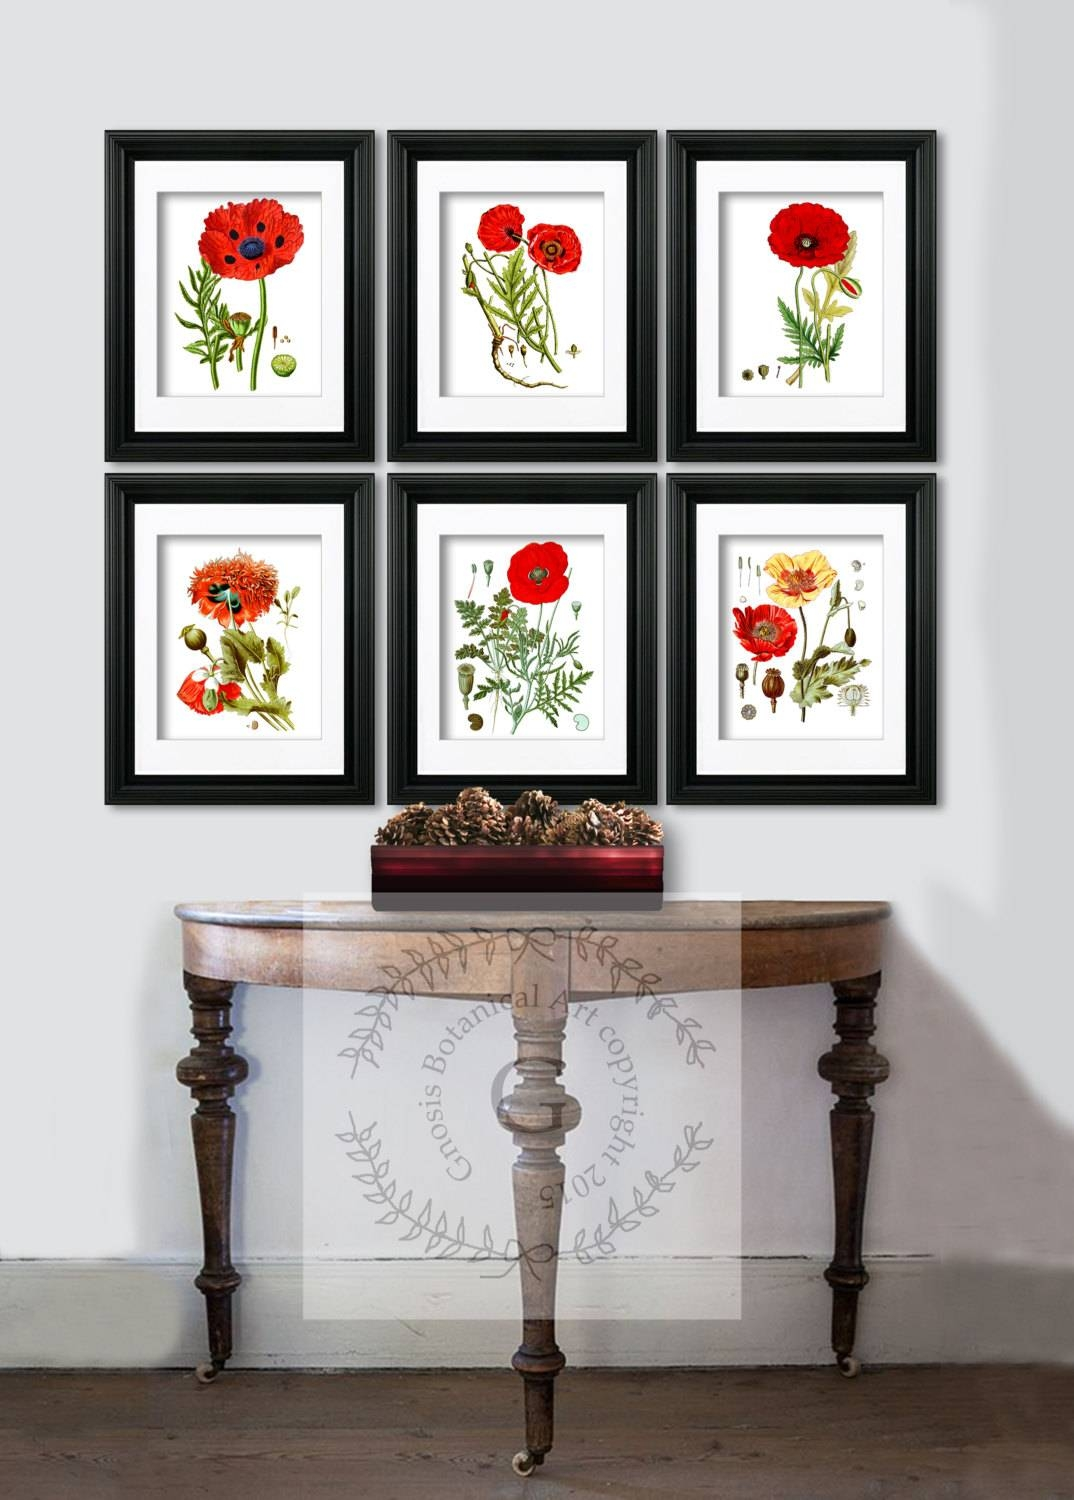 Red Poppy Decor Botanical Prints Red Flowers Poppy Wall Art With Regard To 2017 Wall Art Print Sets (Gallery 7 of 20)